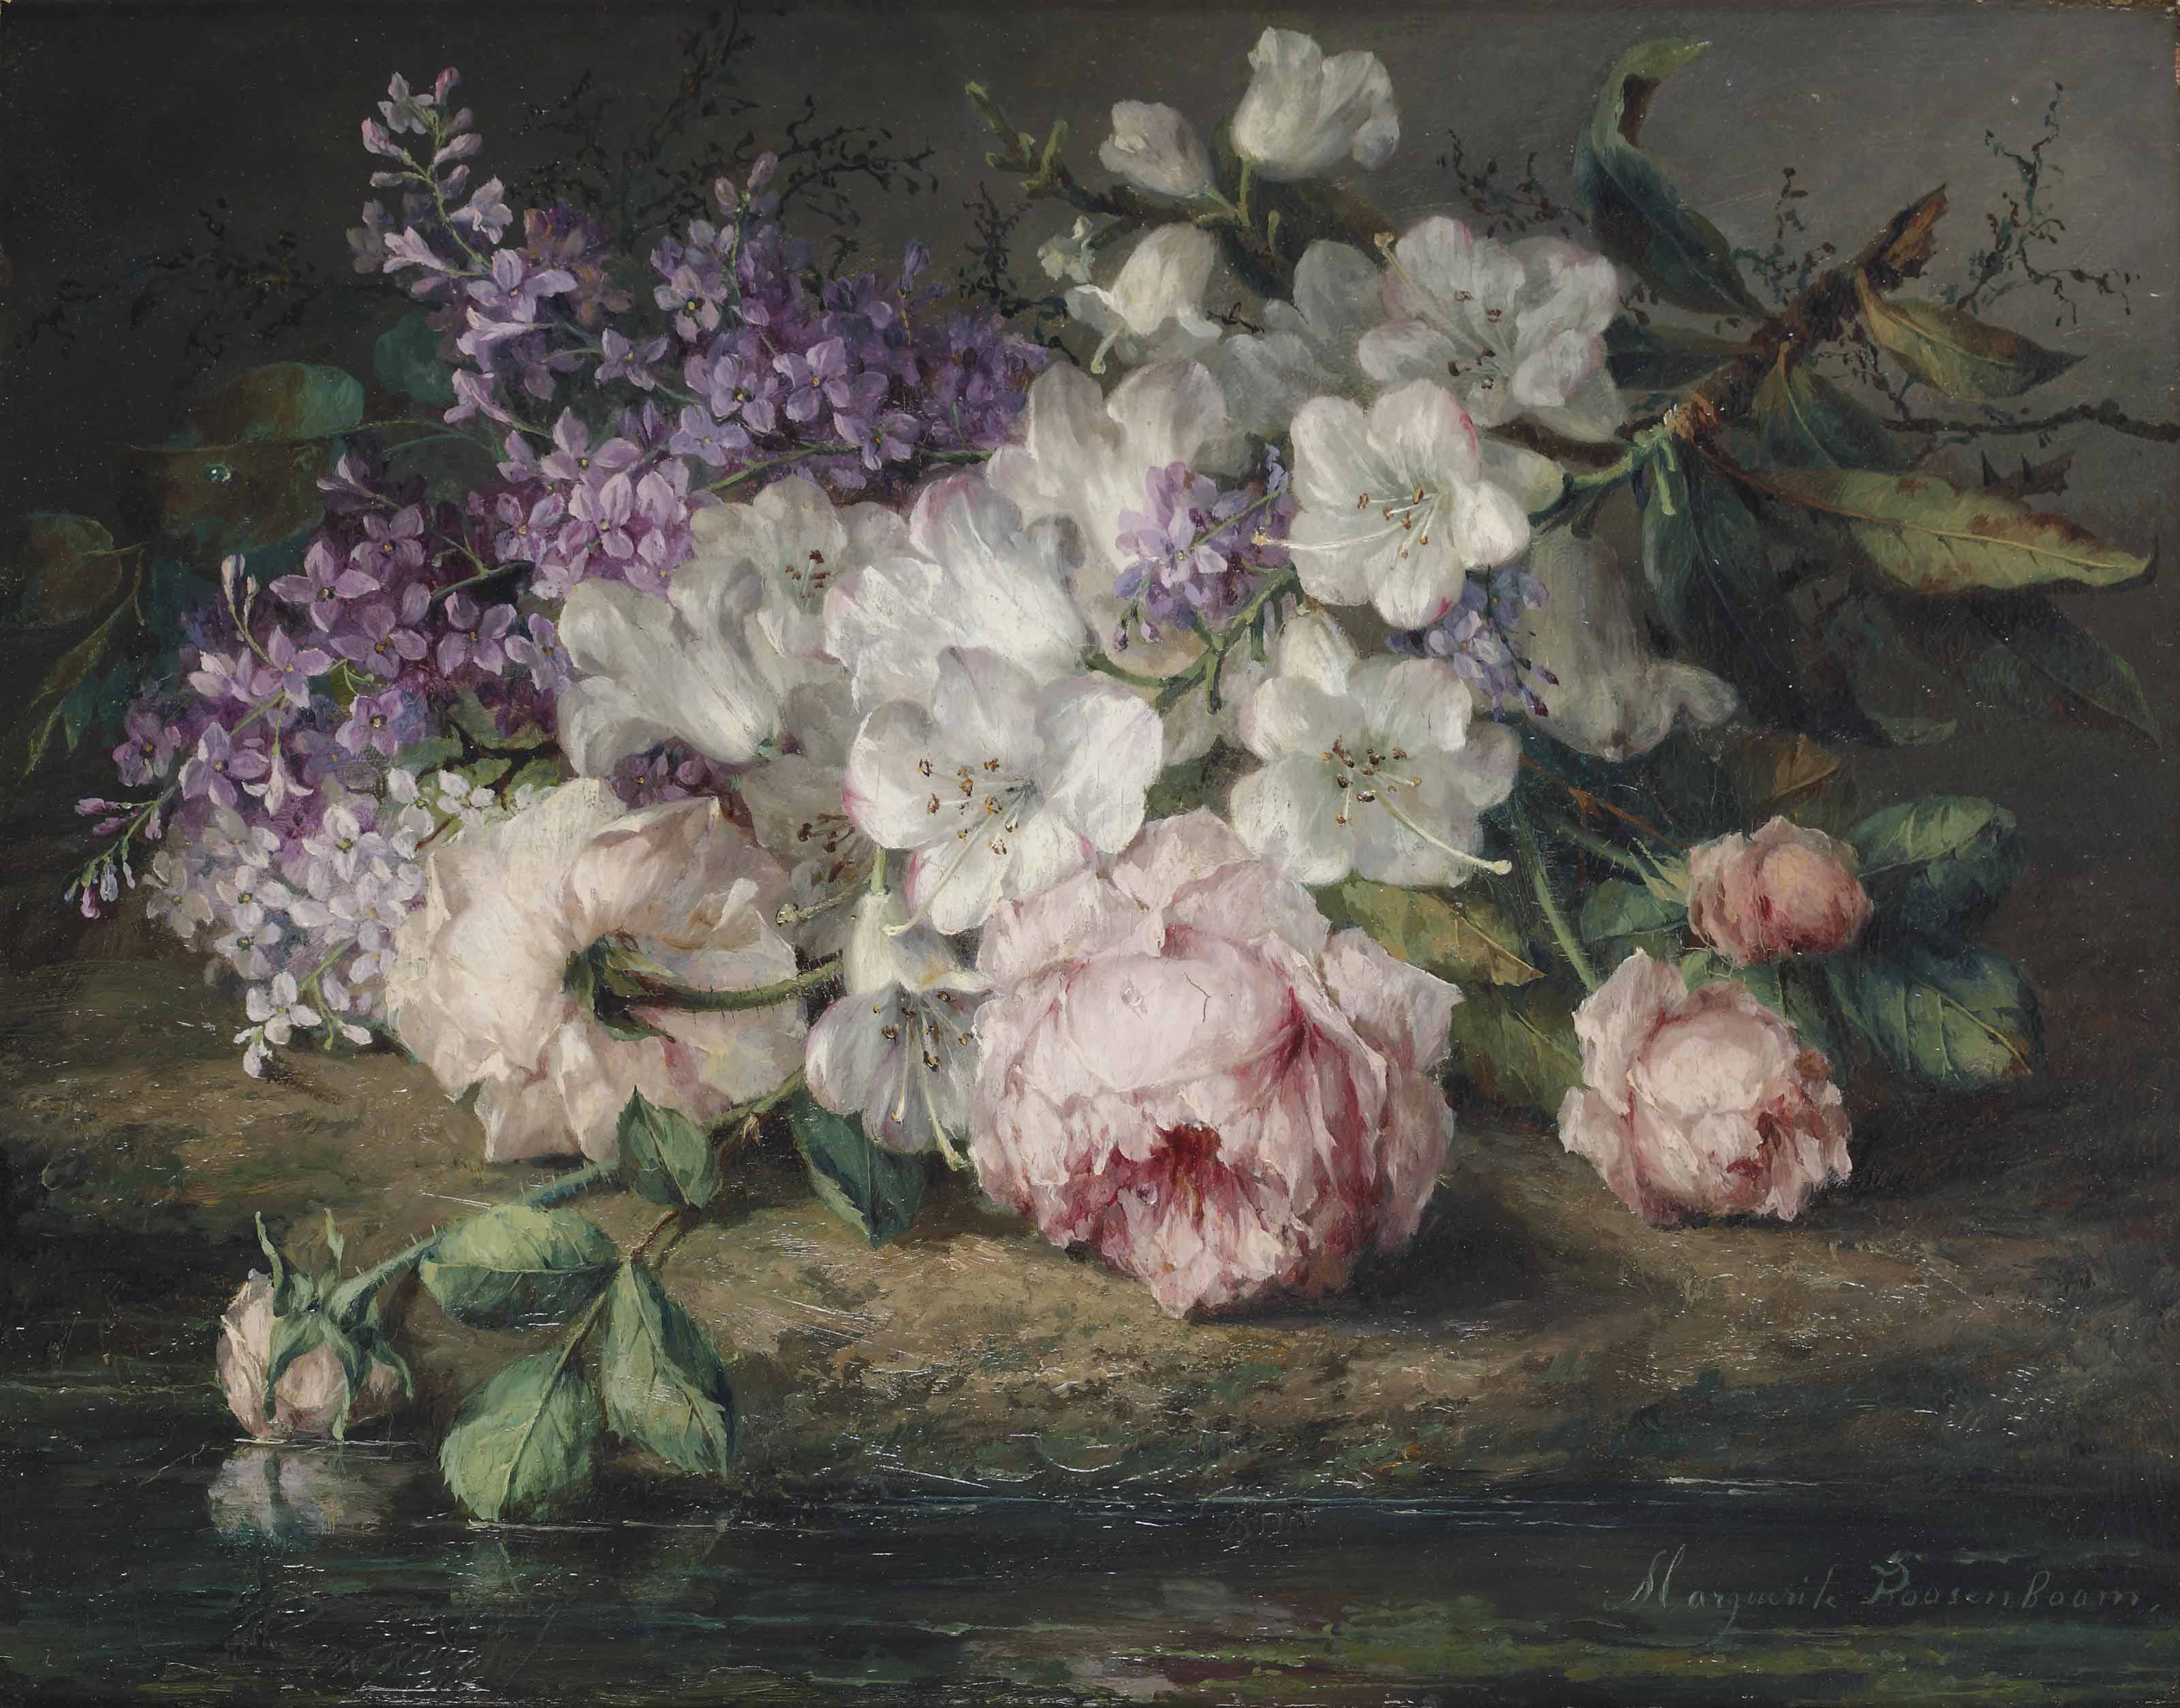 Roses, lilacs and white blossom branches